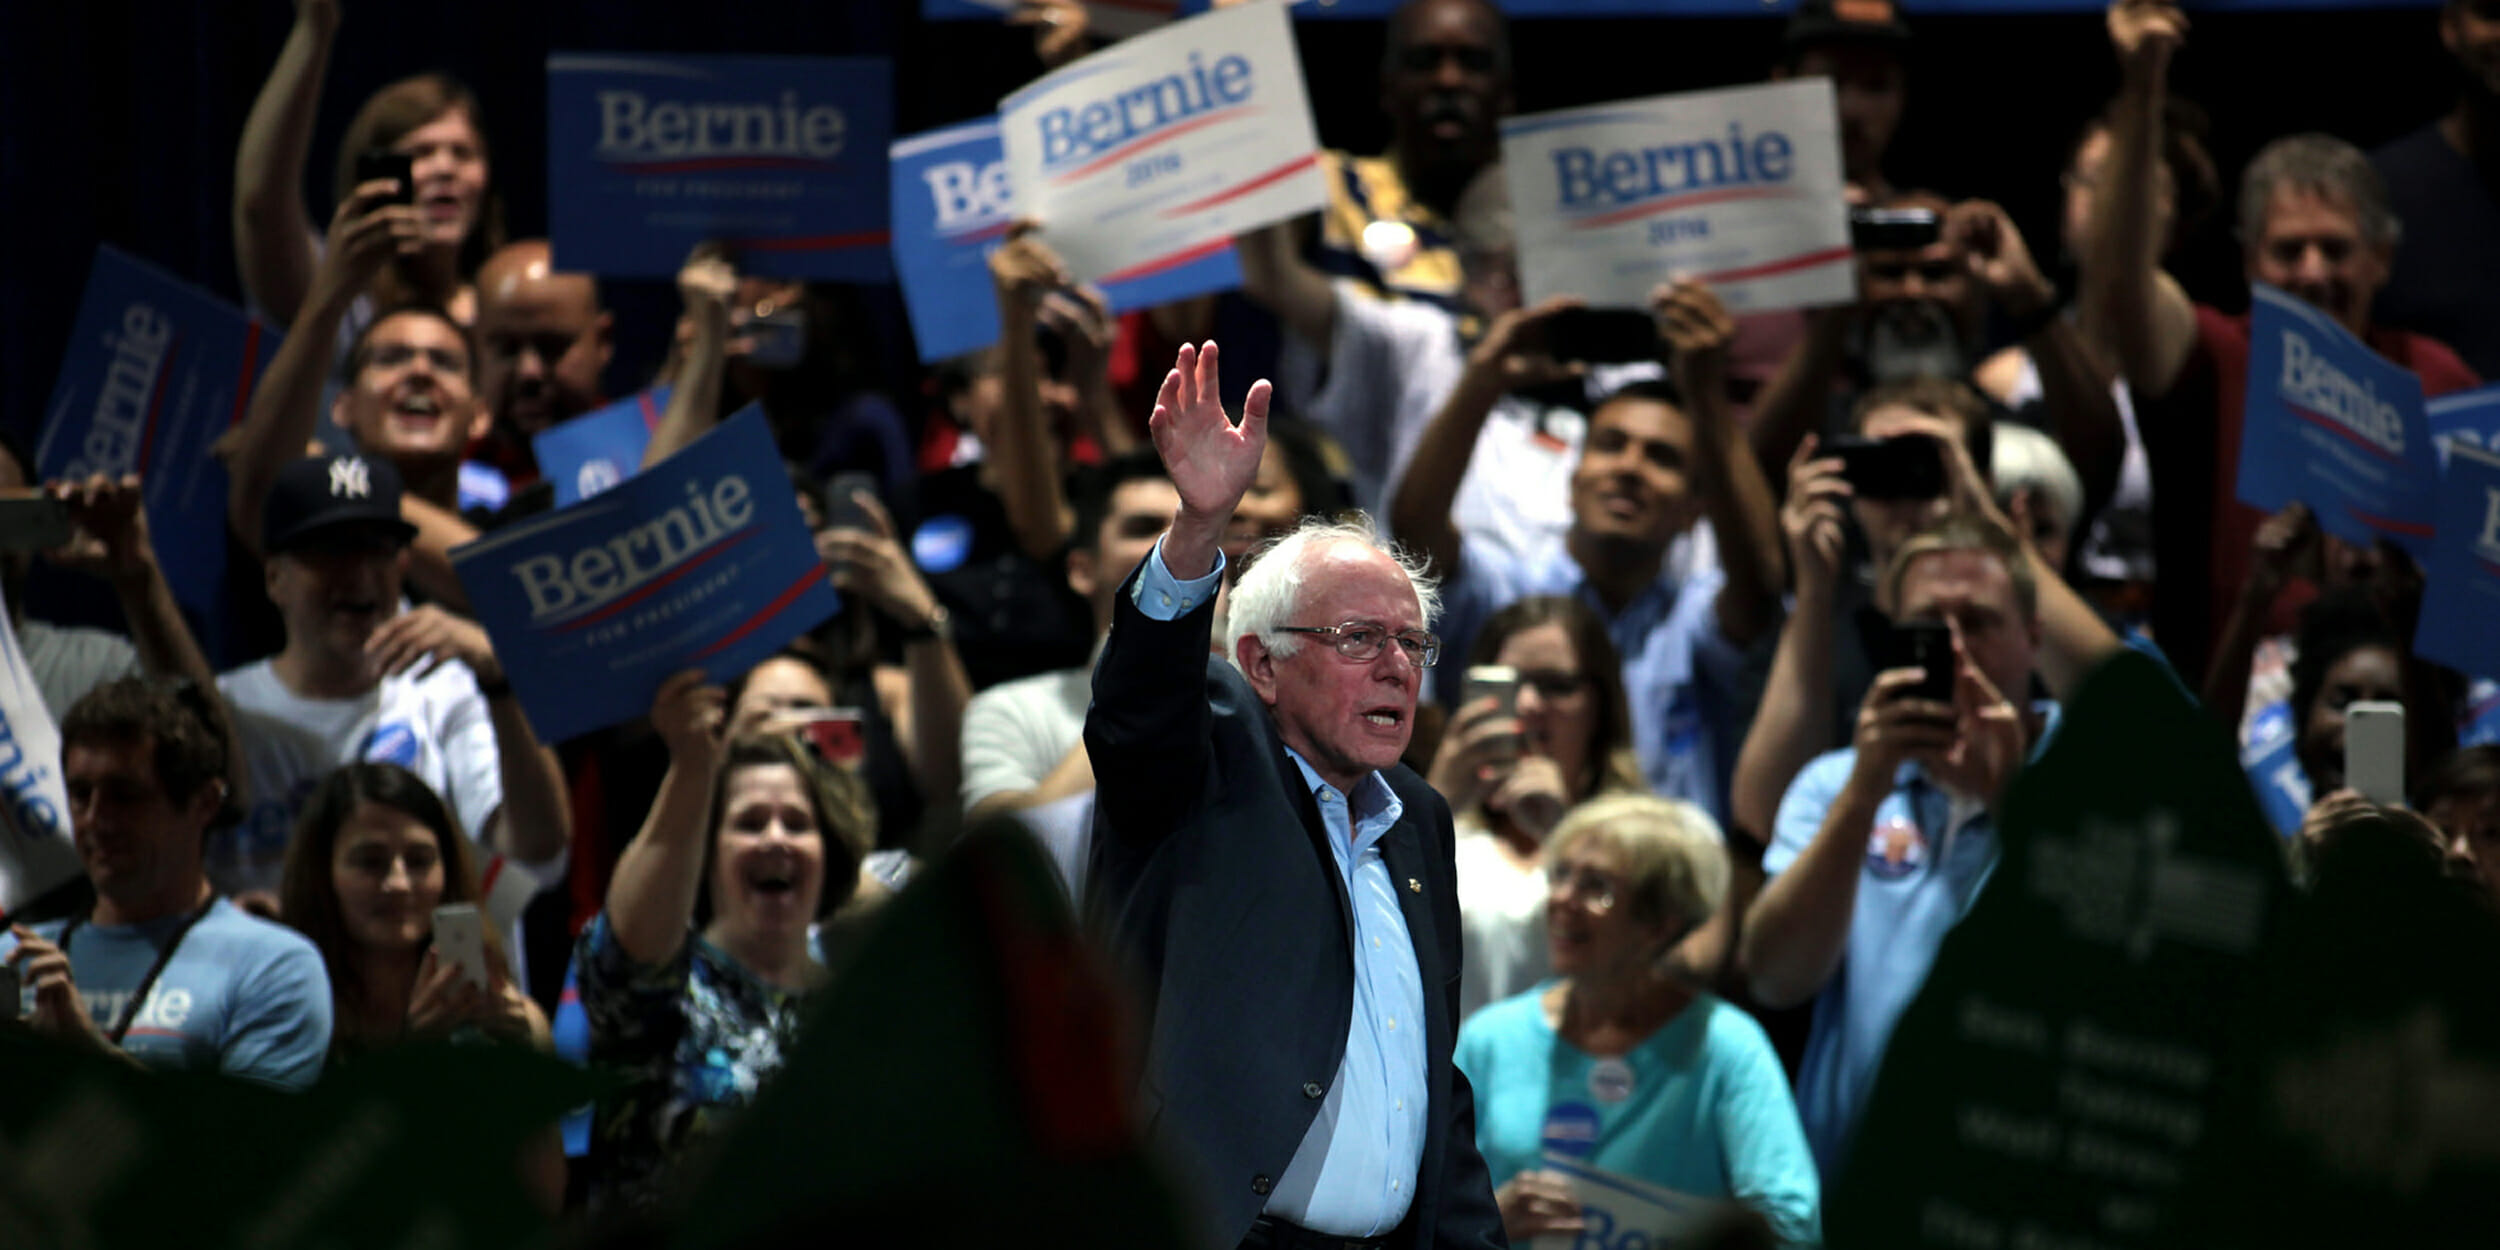 Bernie Sanders supporters need to be unified with Democrats, officials say.